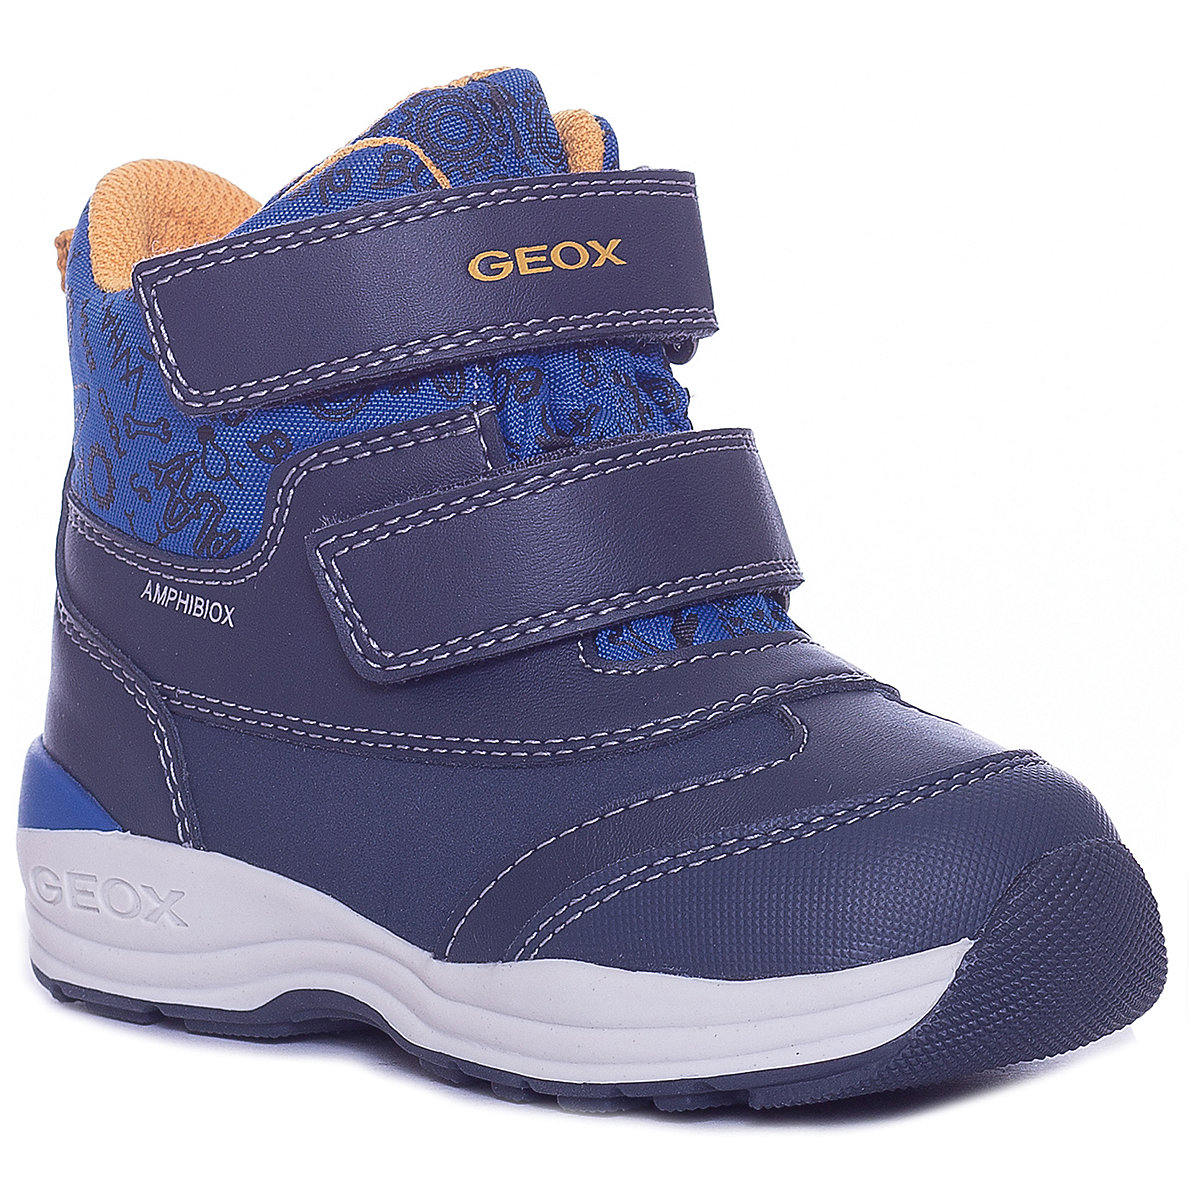 GEOX Boots 8786615 baby shoes For boy textile Winter child snow boots male shoes plus velvet child girls big boy baby winter boots ankle boots 2016 winter